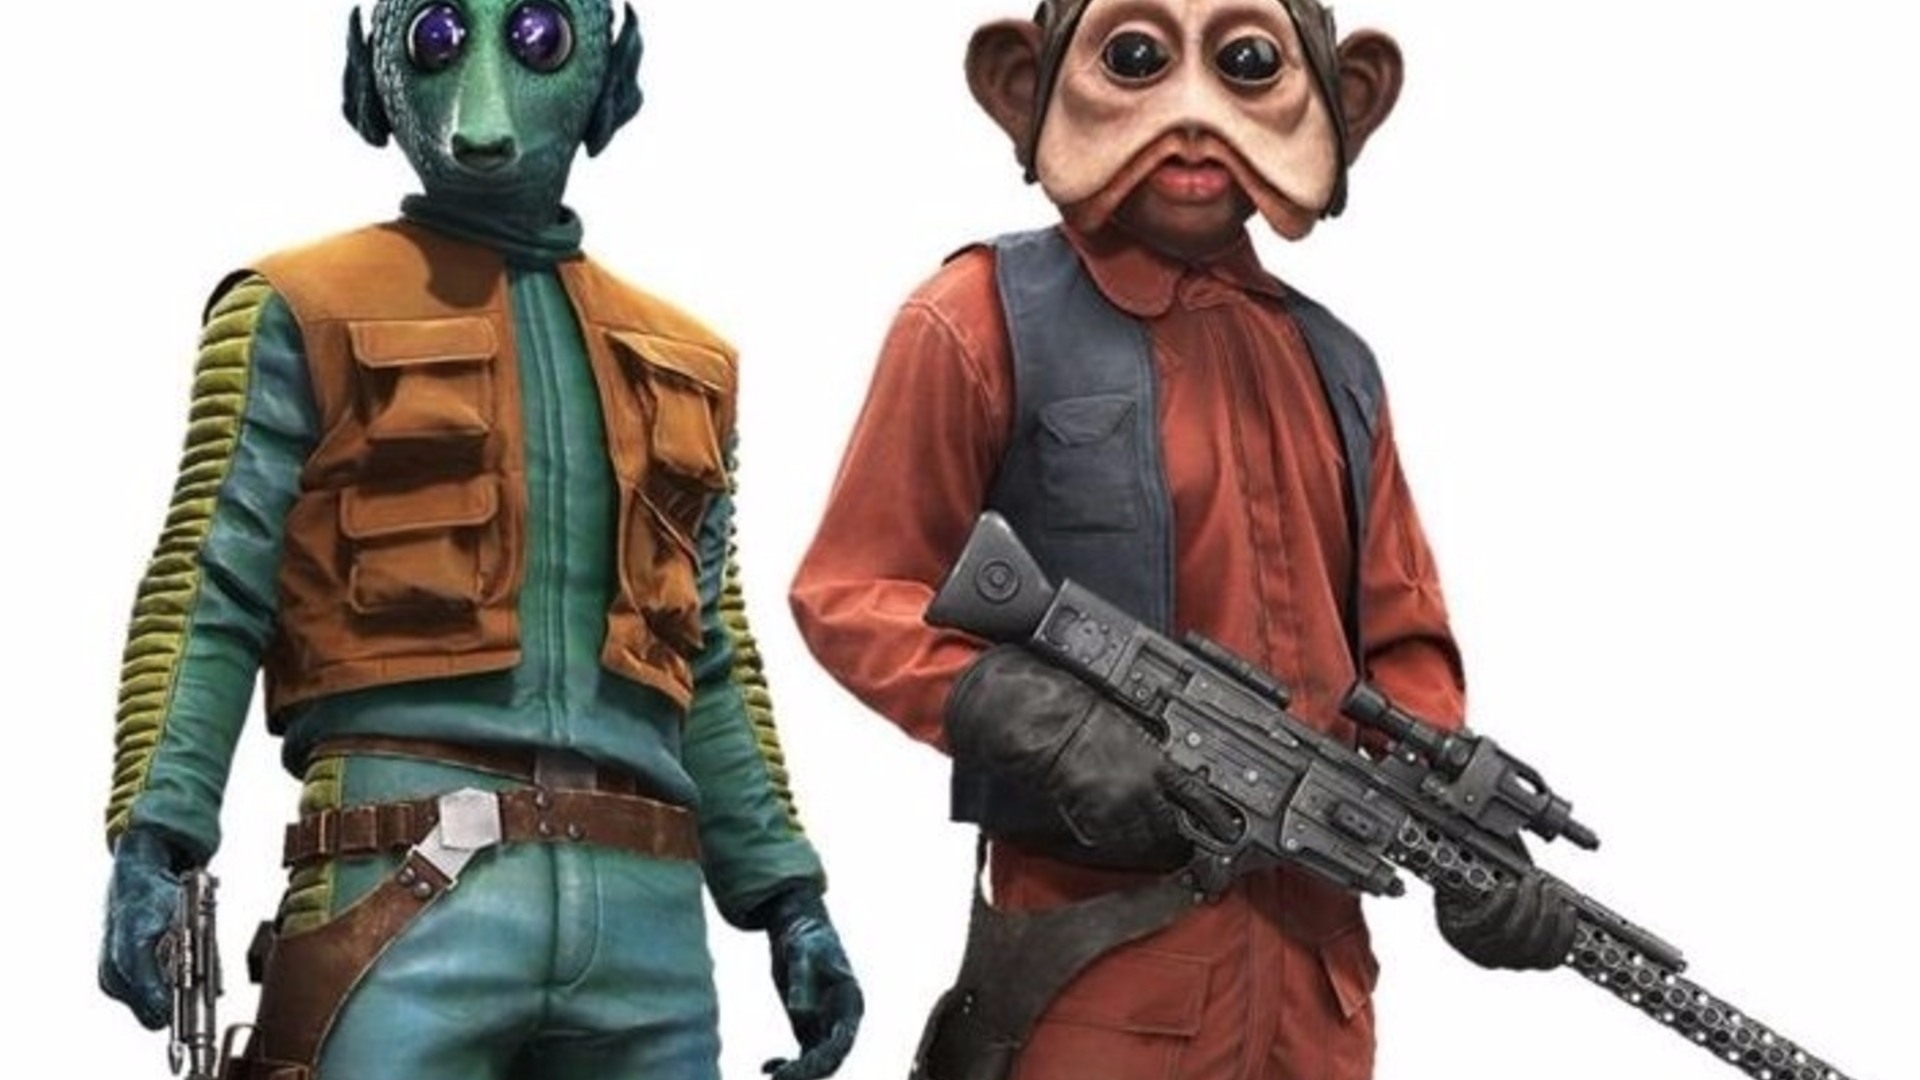 Star Wars Battlefront has made some great strides since launch - the Outer Rim DLC isn't one of them